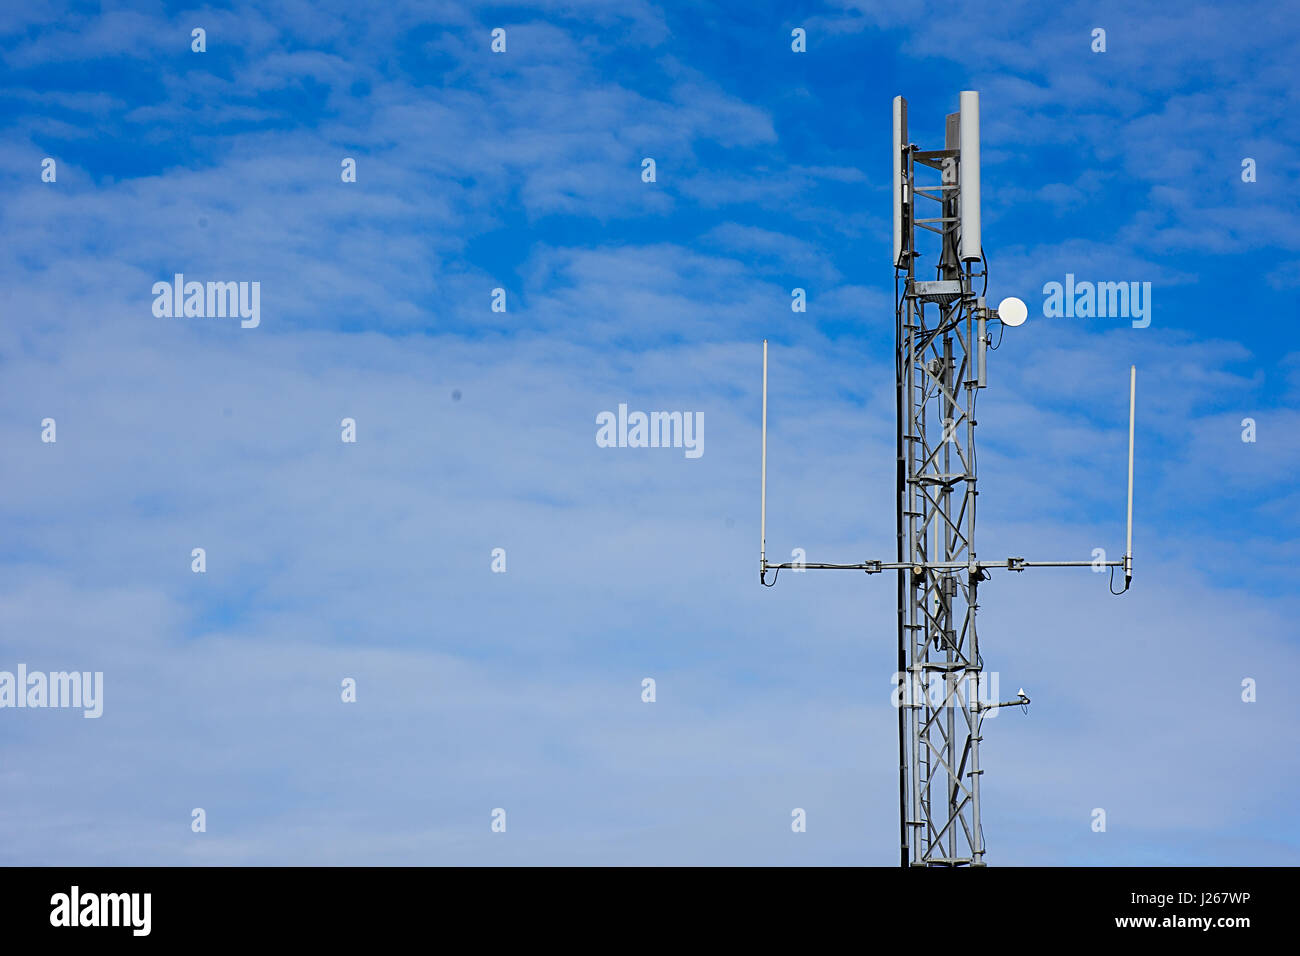 Mobile antenna station,North Wales,Uk.Space for edit or text,blue sky with clouds background.Connectivity Uk. - Stock Image